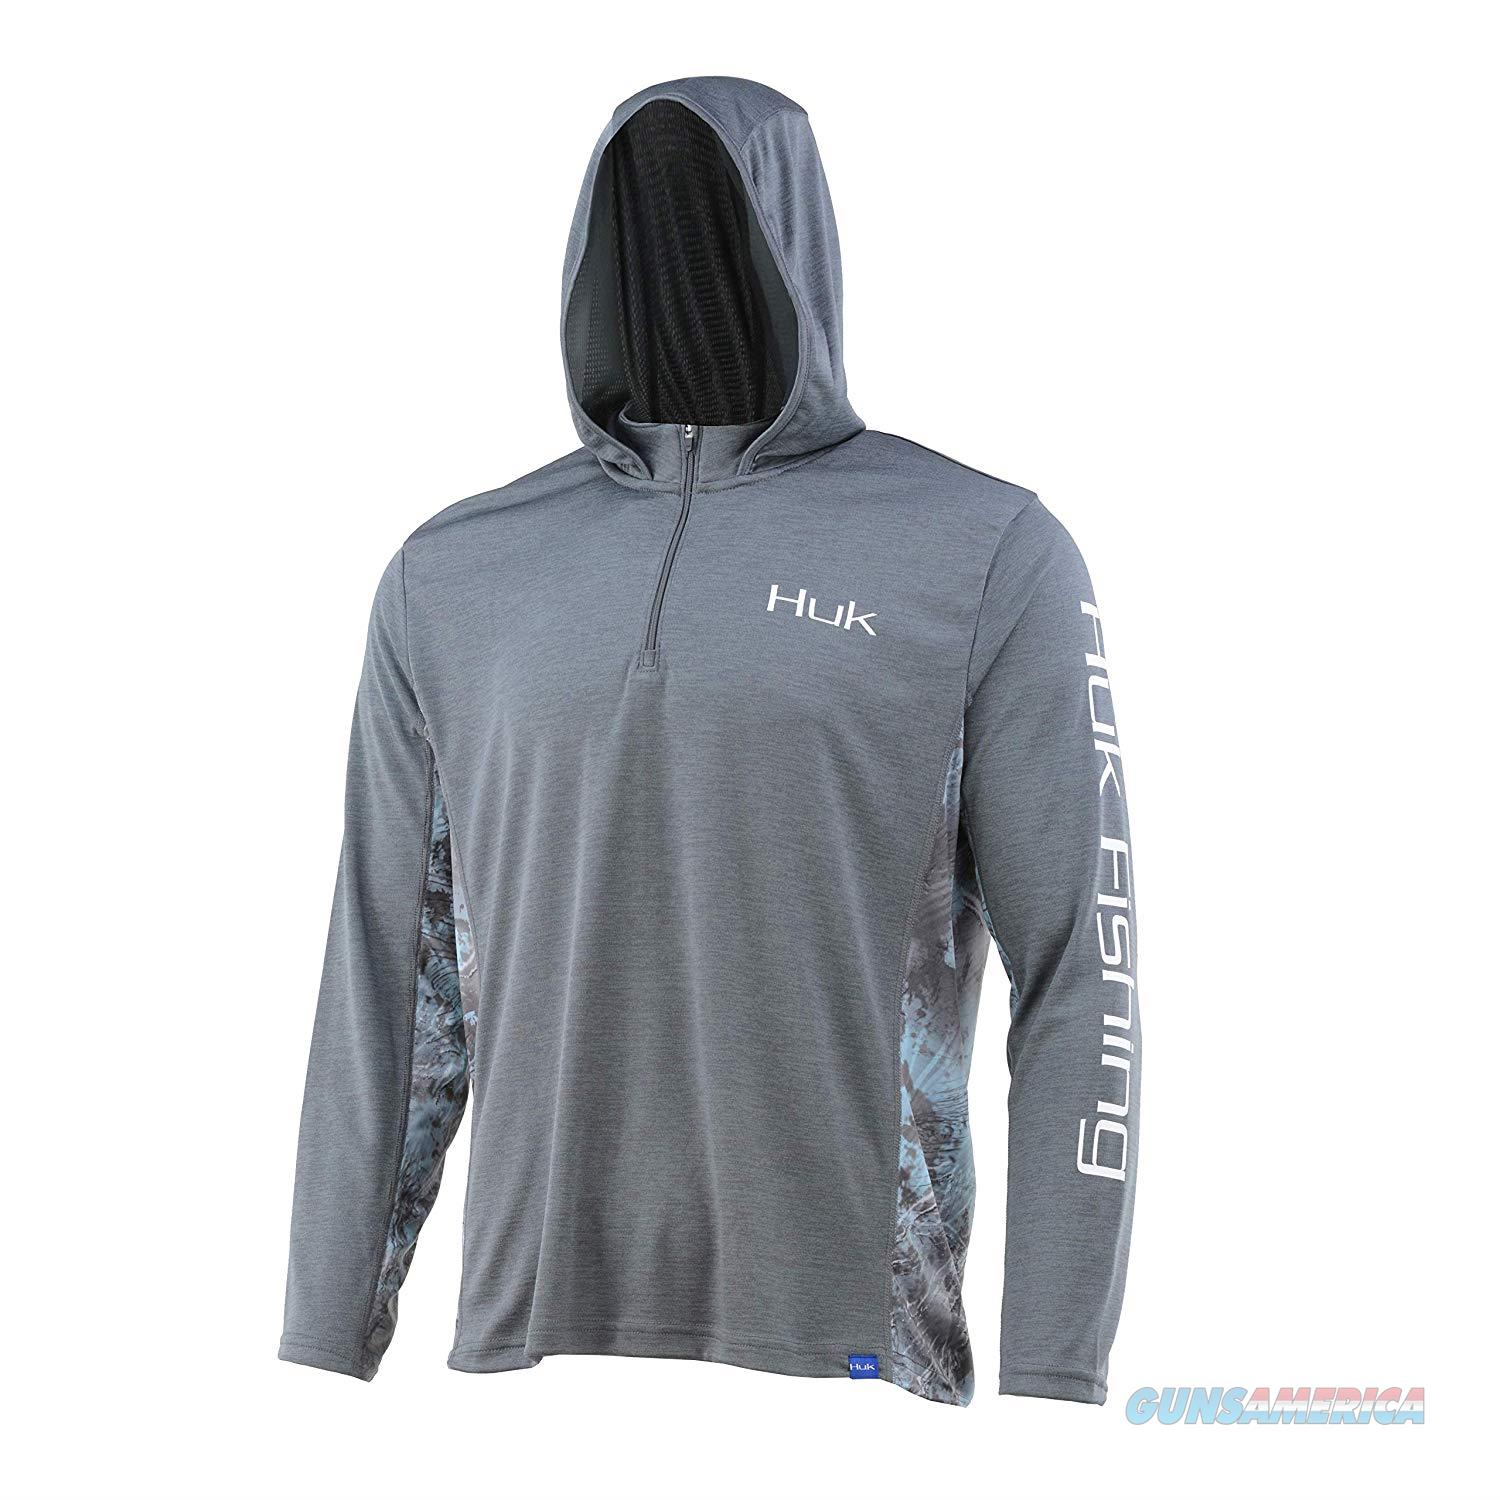 Huk Cold Weather Icon Hoodie Grey XL  Non-Guns > Hunting Clothing and Equipment > Clothing > Shirts